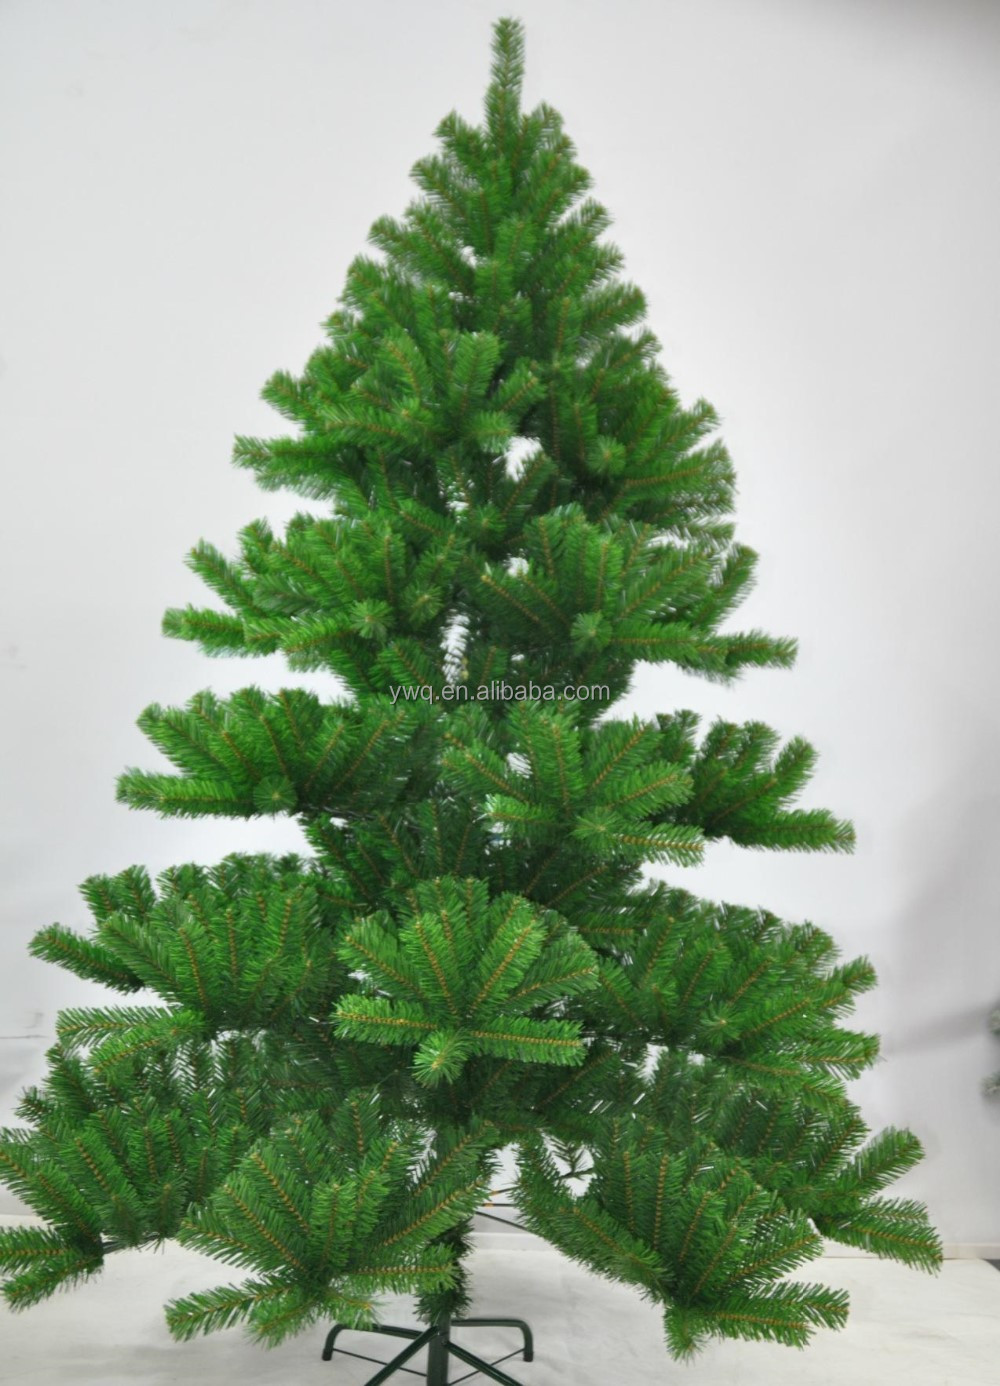 Wholesale Customized Styles Artificial Christmas Tree Parts For ...